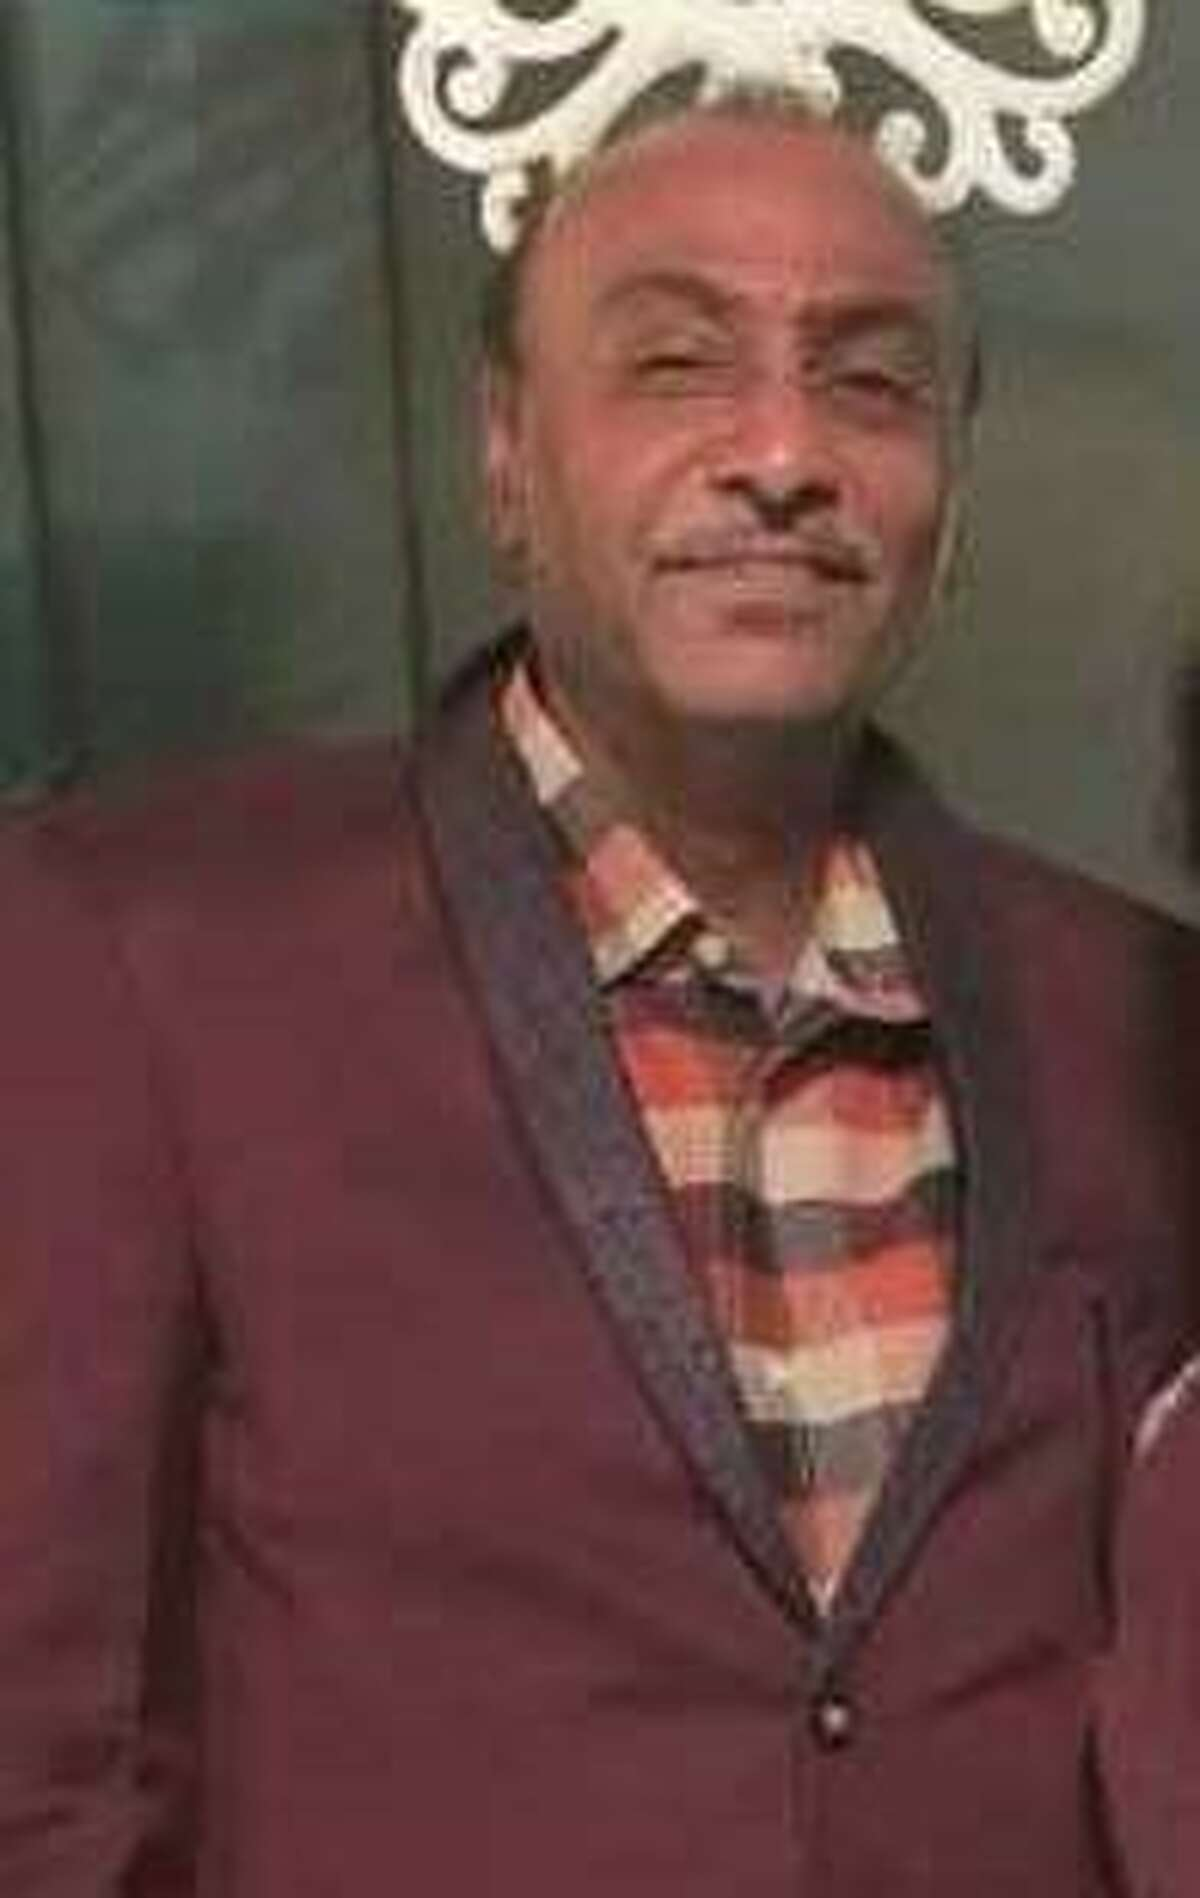 Naval Kishor Bhattad Died in the hospital on April 18